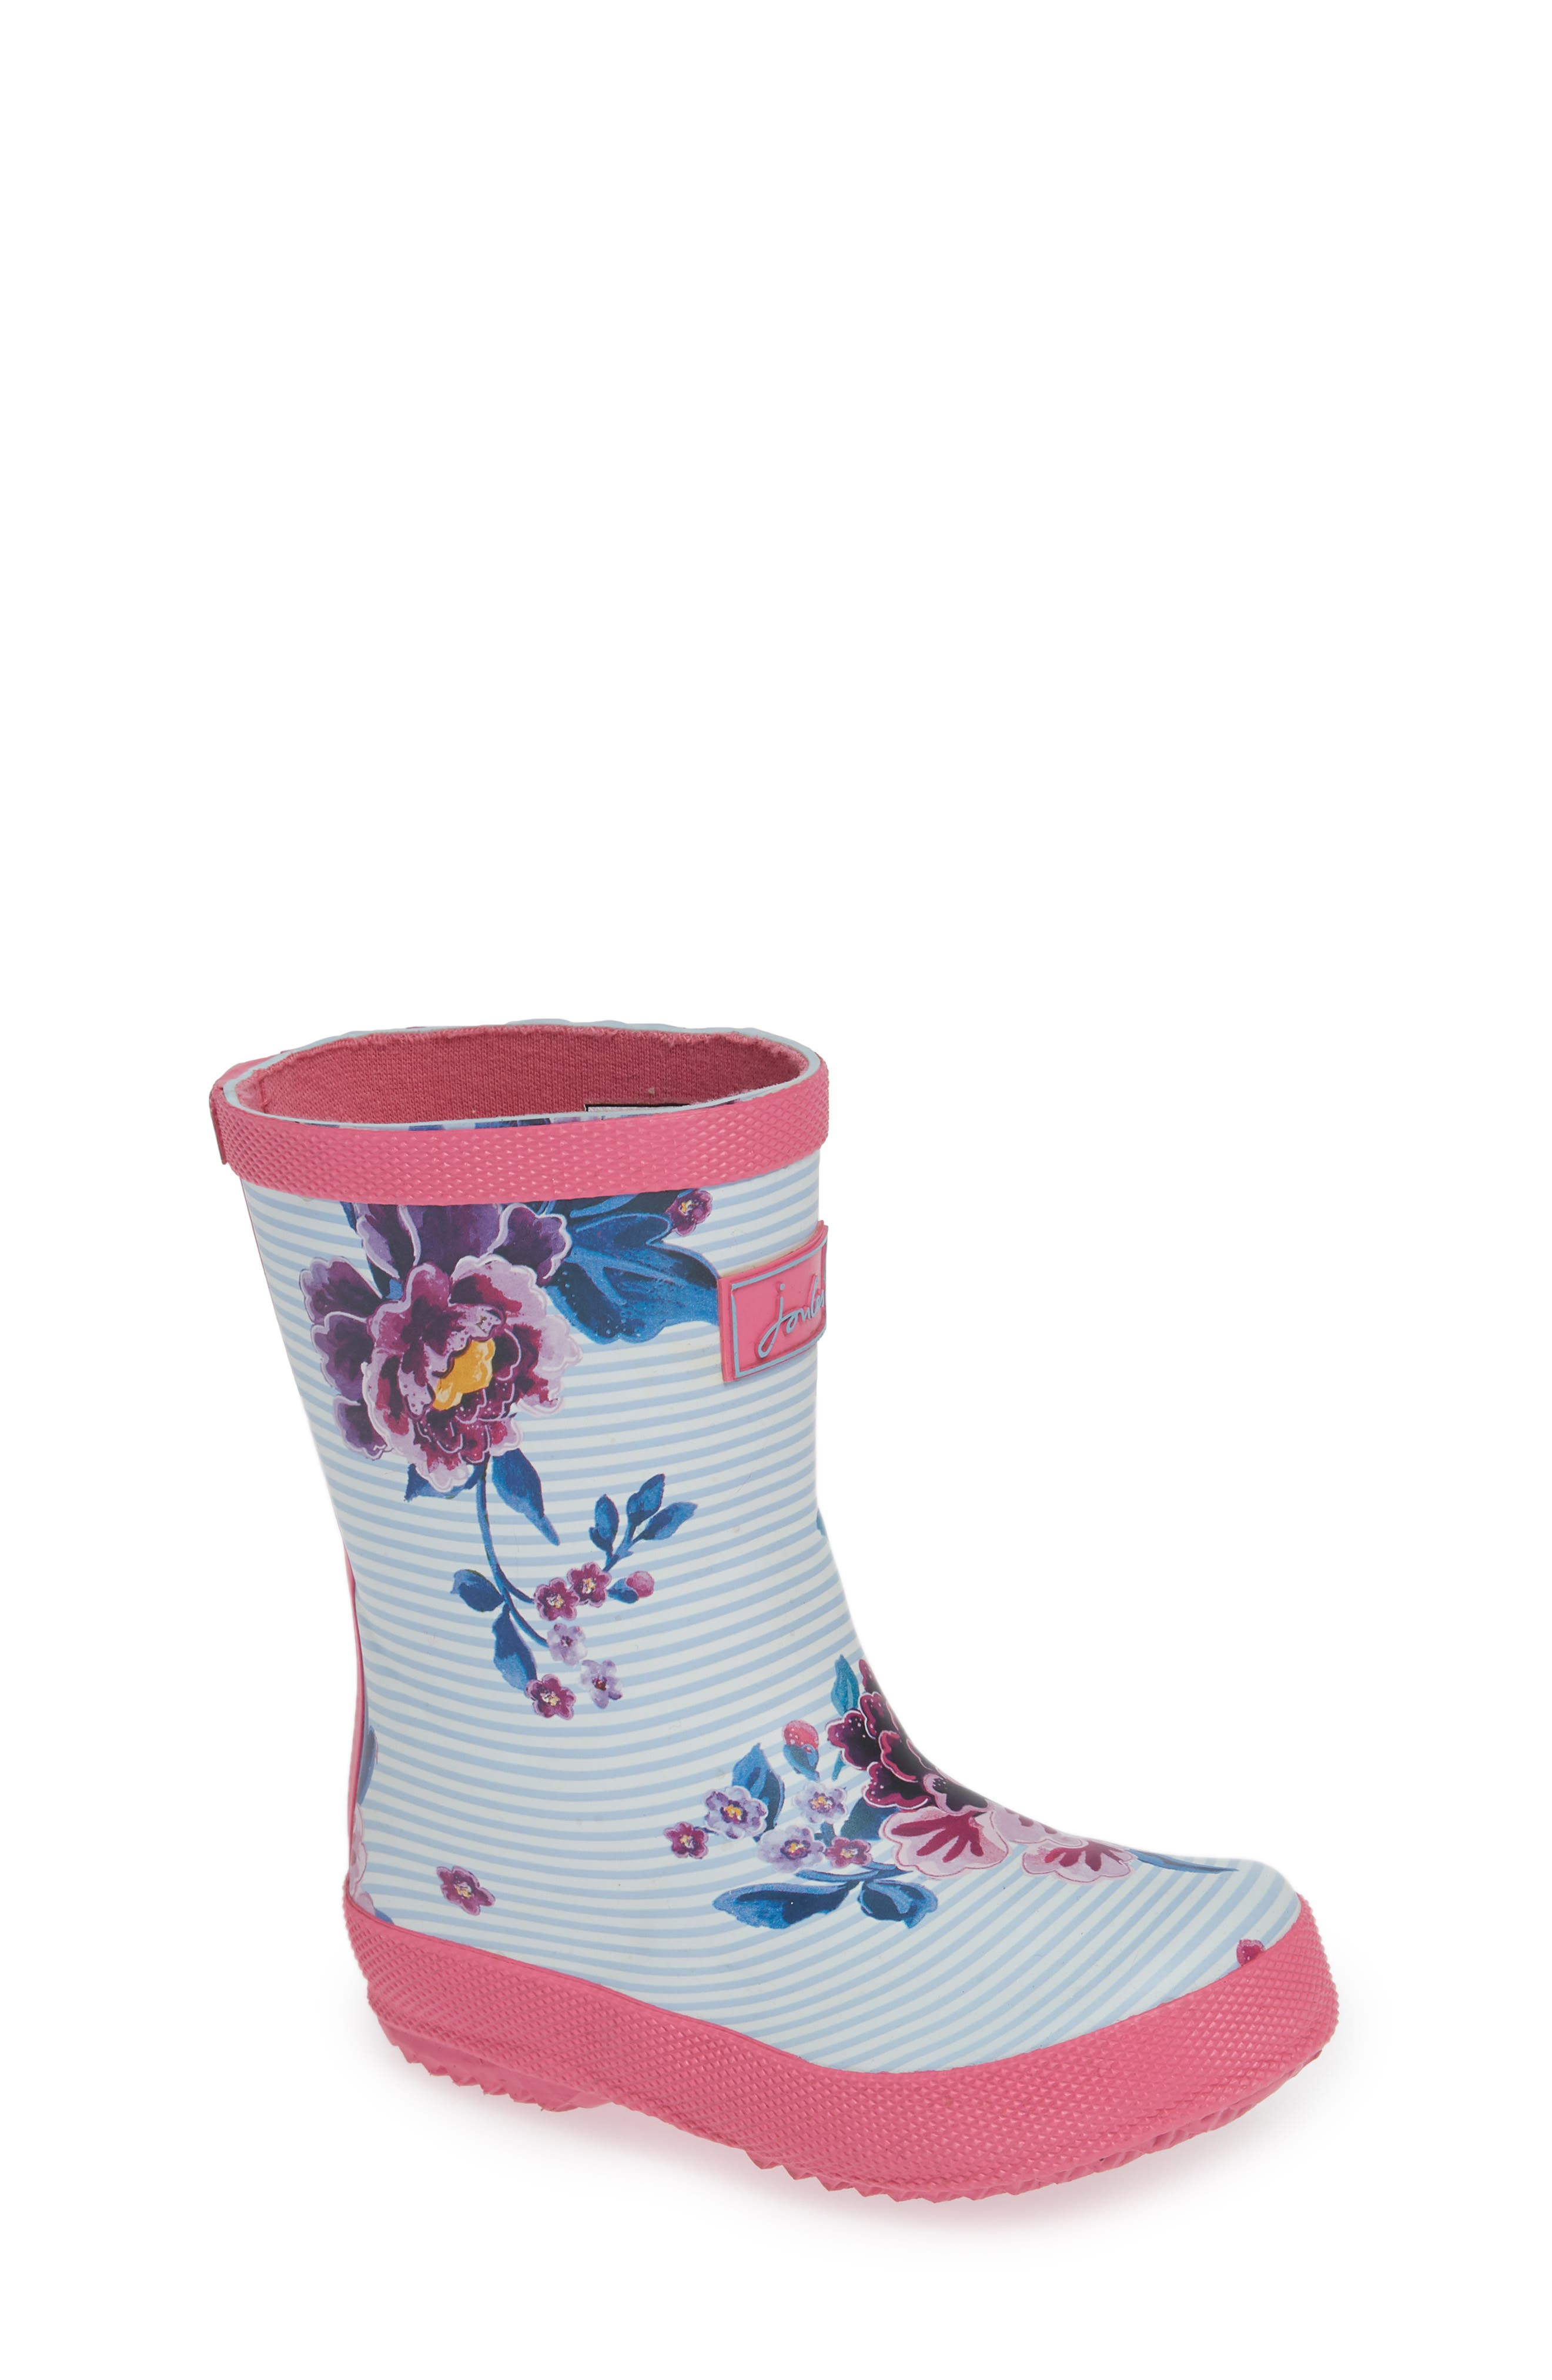 Baby Welly Print Waterproof Boot,                         Main,                         color, Sky Blue Chinoiserie Floral